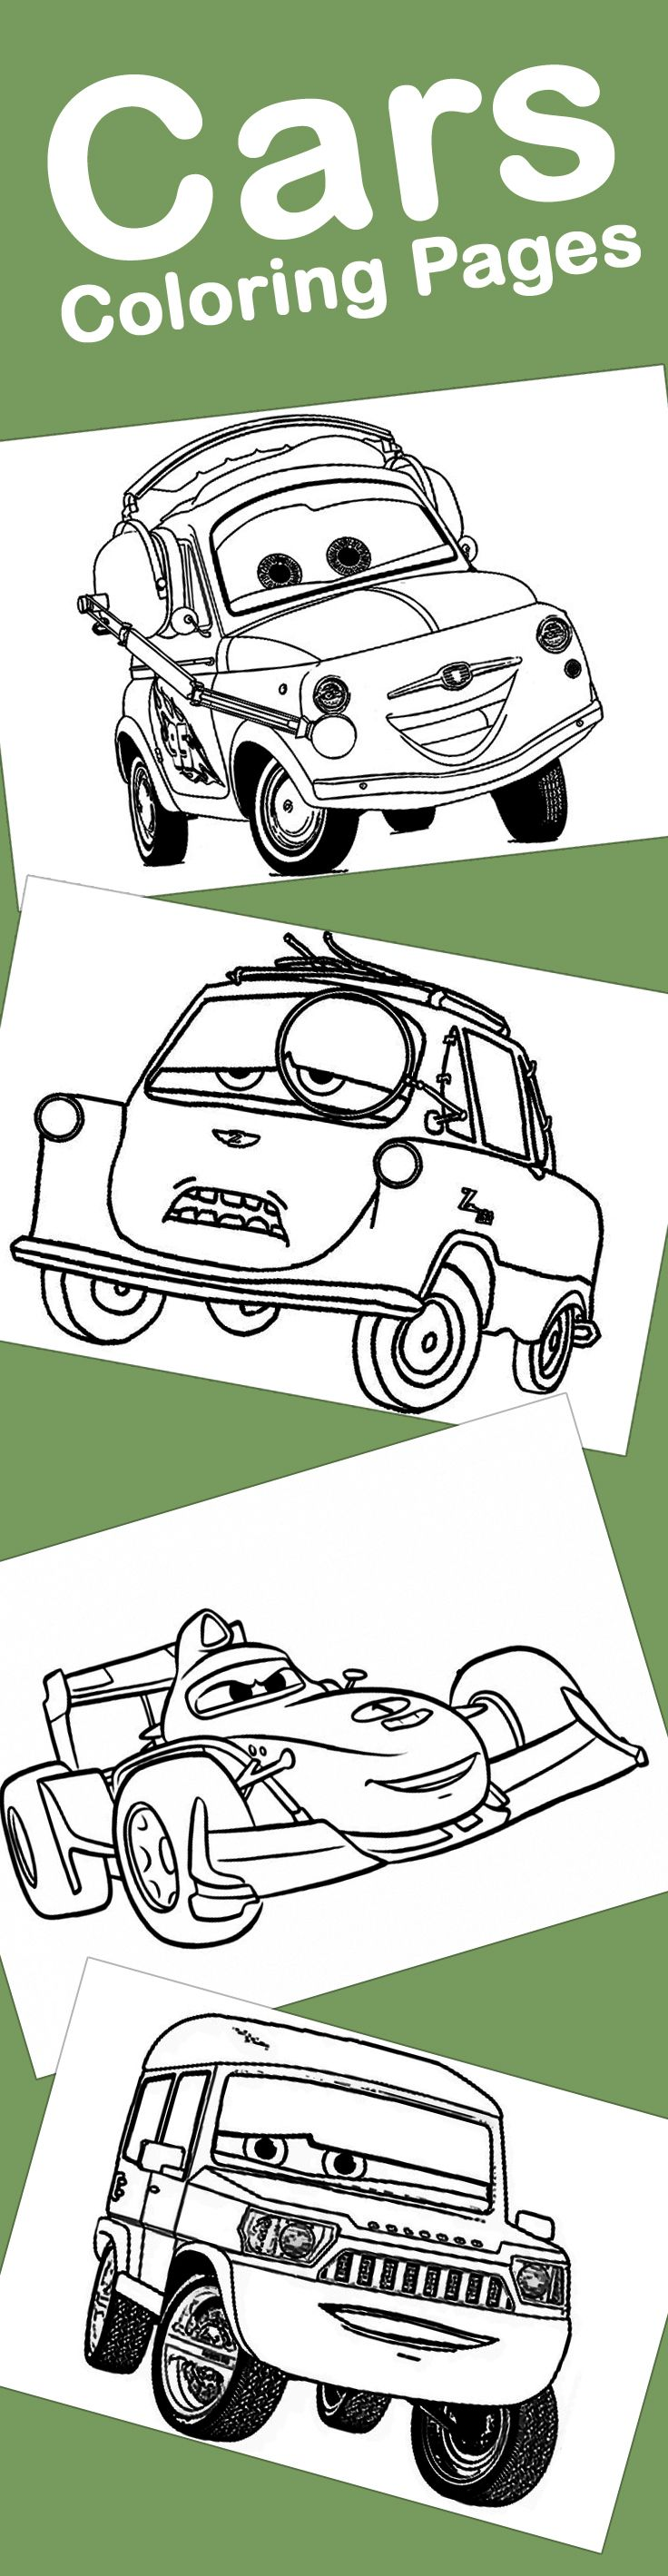 Car coloring games online free - Top 25 Free Printable Colorful Cars Coloring Pages Online